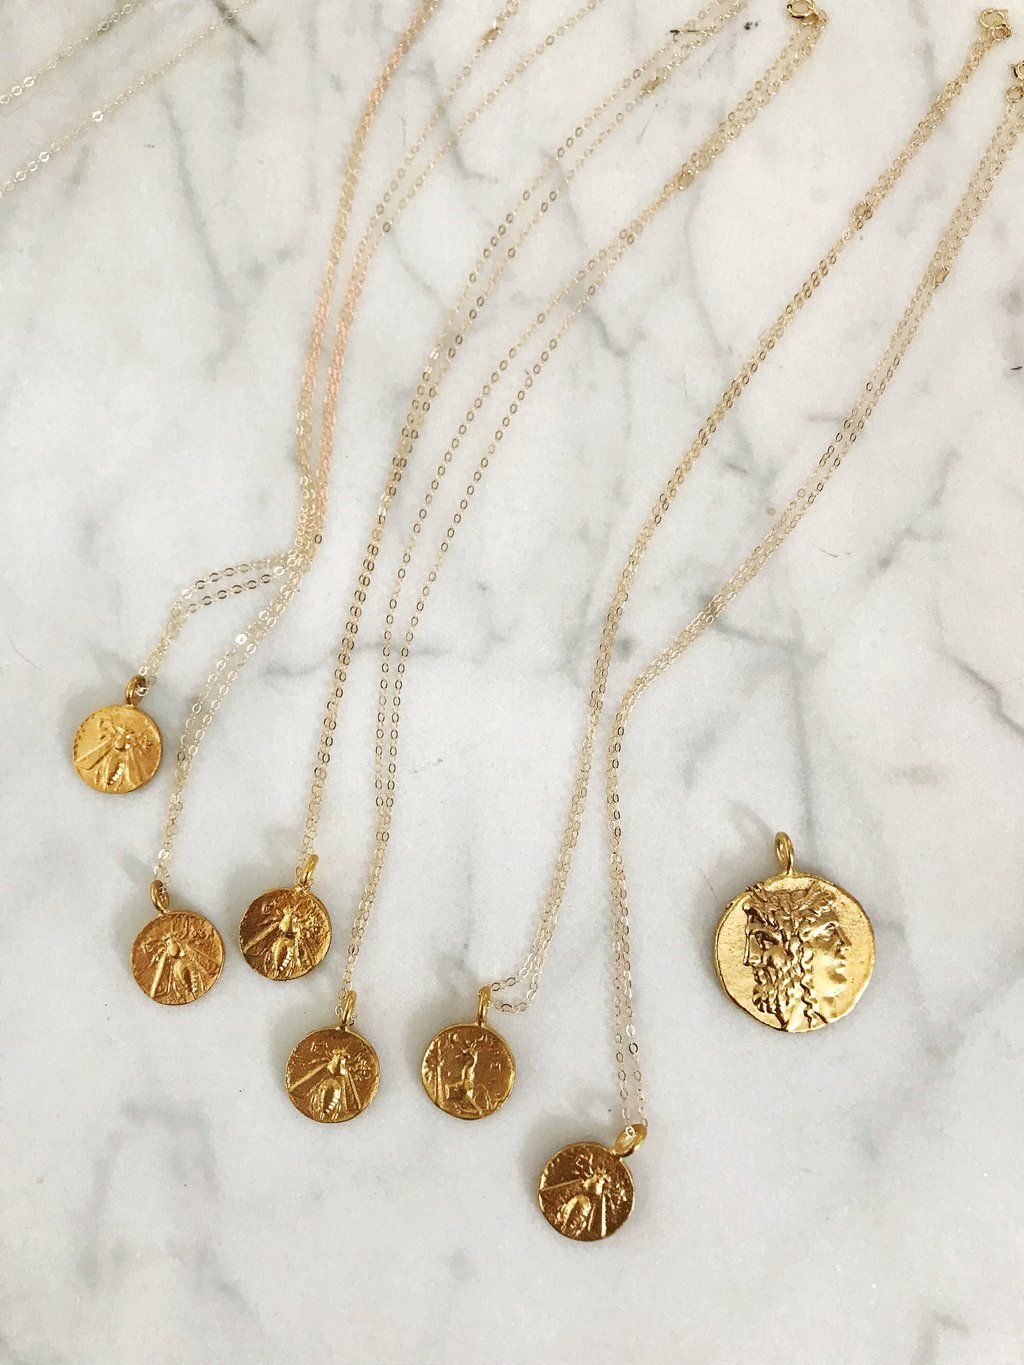 d566d95156437e Baby Bee Necklace Gold Coin Necklace, Bee Necklace, New Shop, Jewelry, Gold